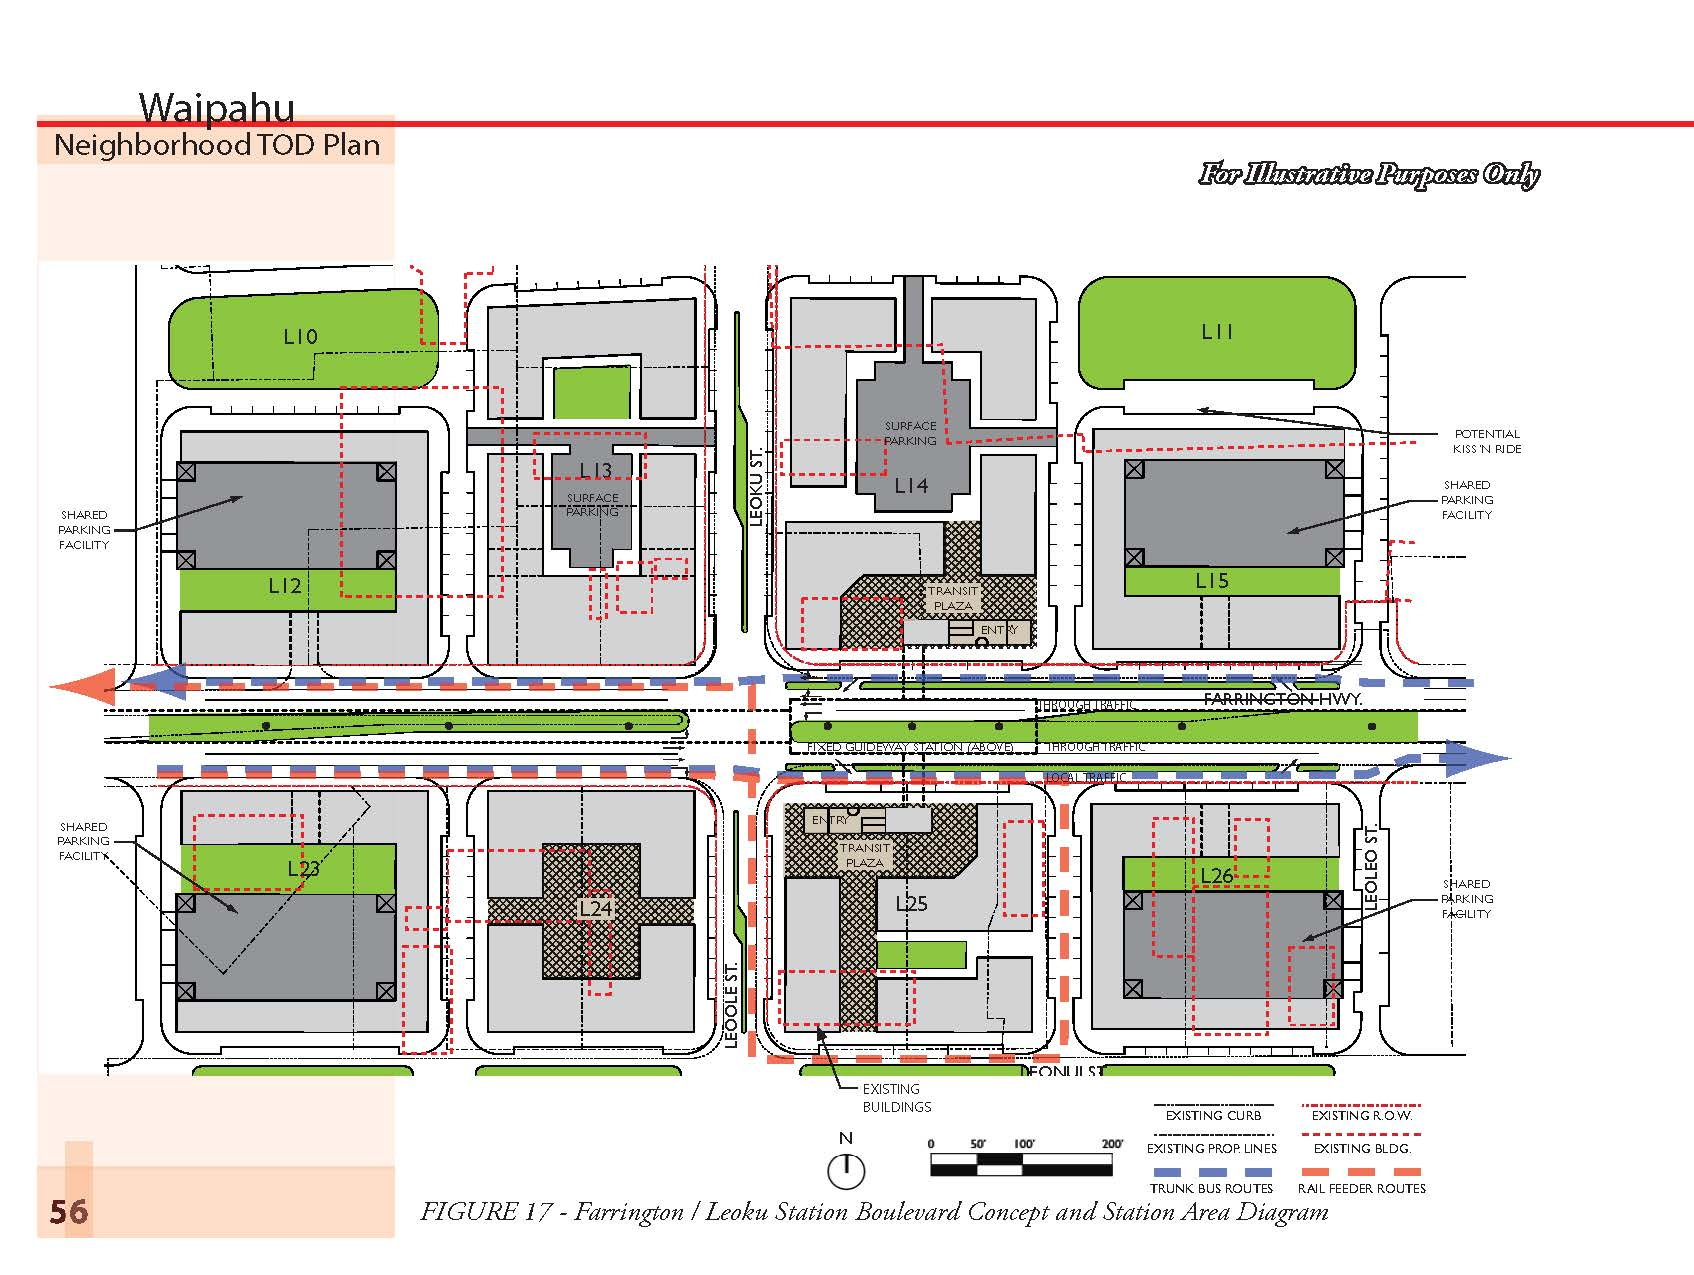 160513_Waipahu Neighborhood TOD Plan_Page_062.jpg